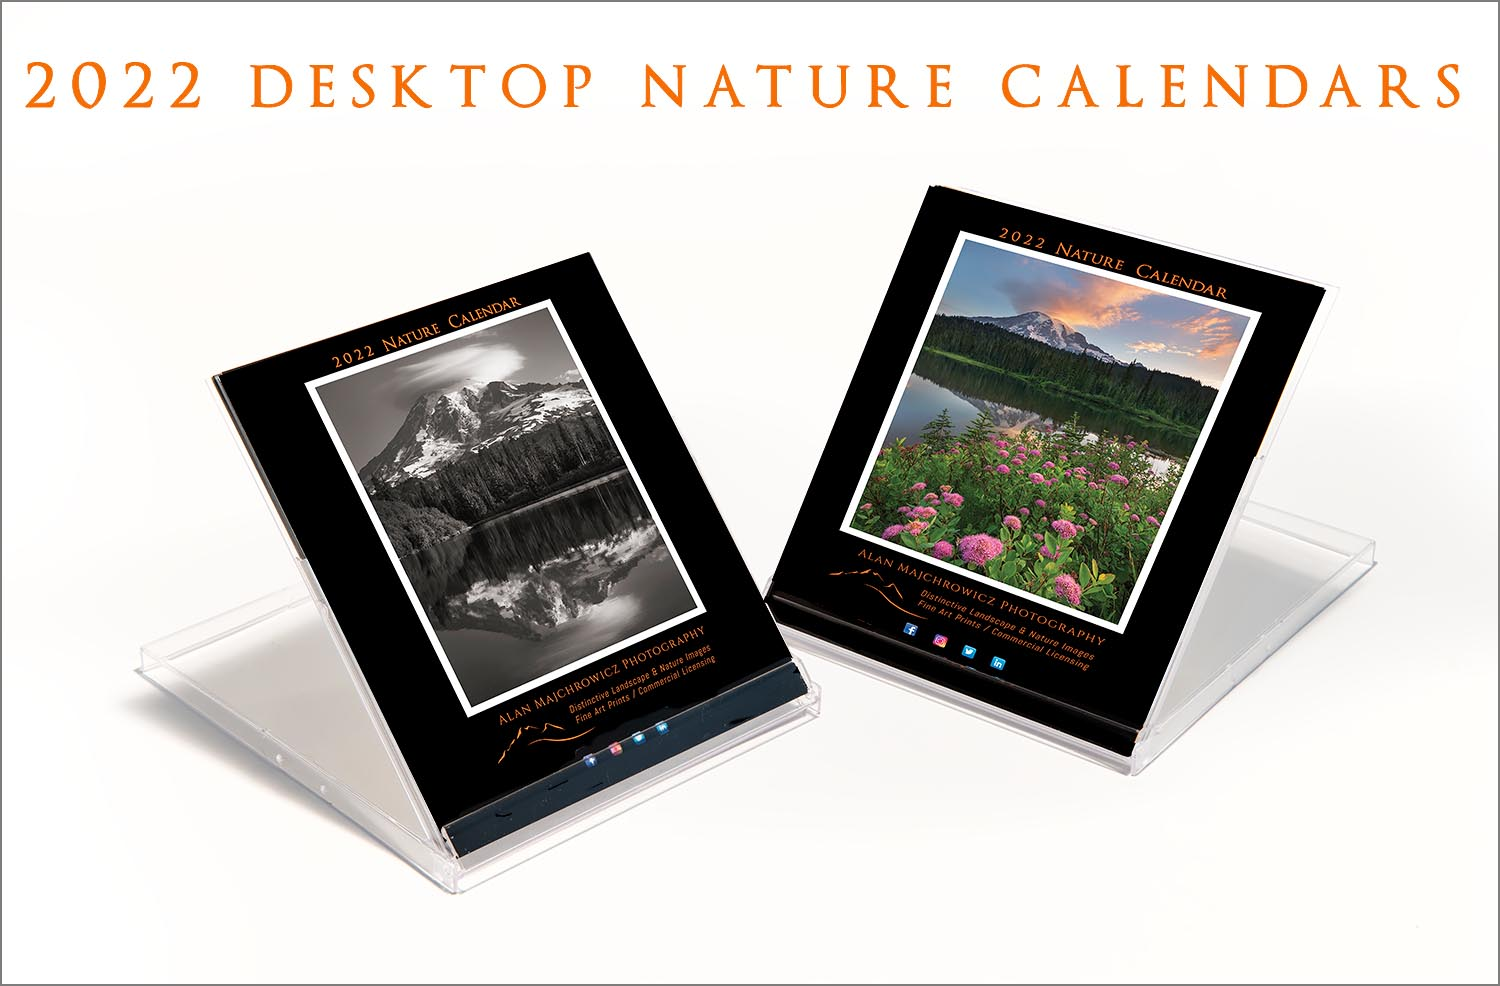 2022 Desktop Nature Calendar. Presented in a CD jewel case they're perfect for offices, kitchen counters, and nightstands.